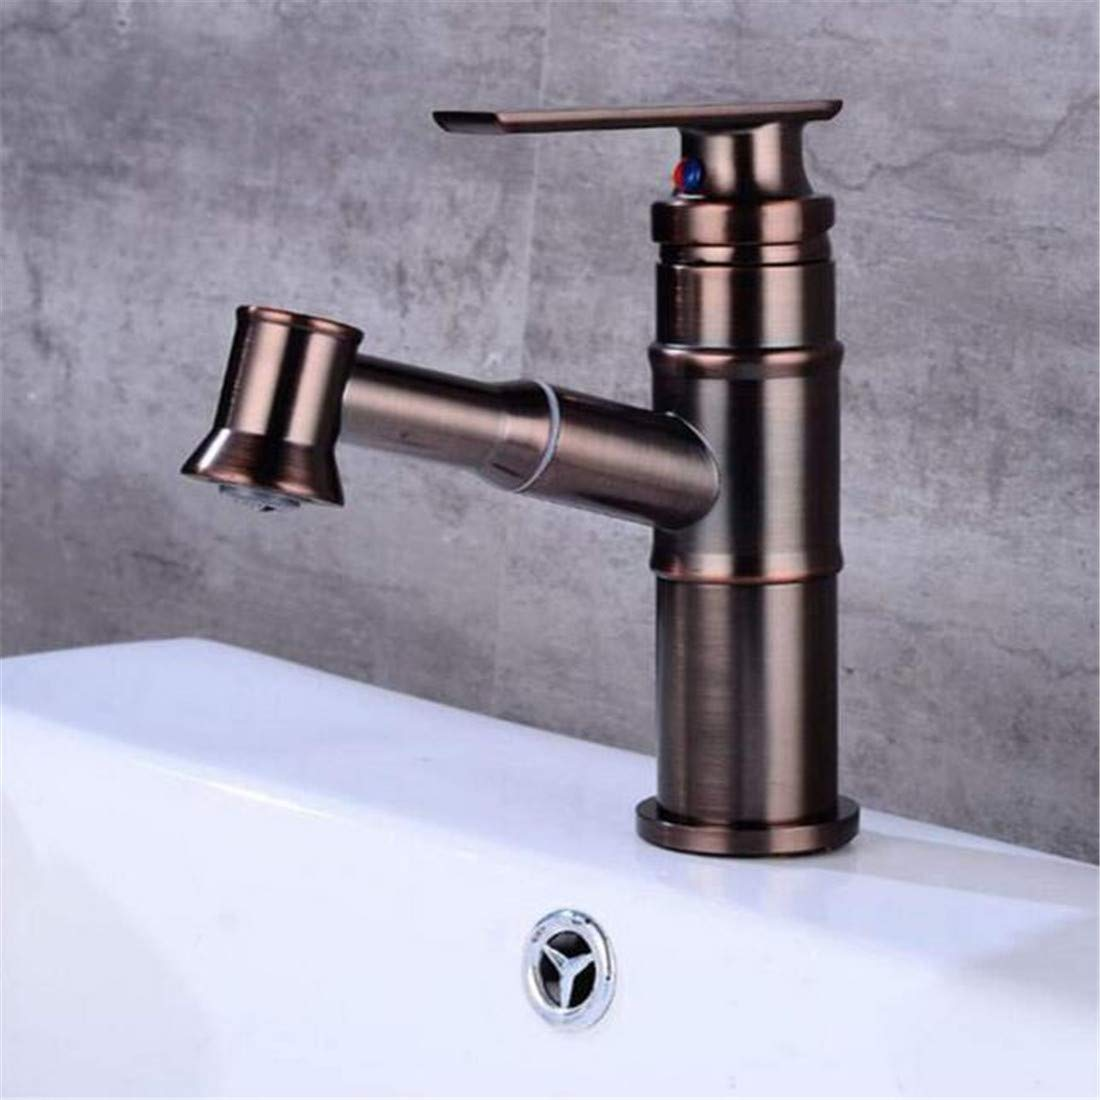 Chrome Kitchen Sink Tapcolor Modern Pull Out and Down Bathroom Faucet Kitchen Sink Faucet Toilet Mixer Tap Hot Cold Water Wc Tap